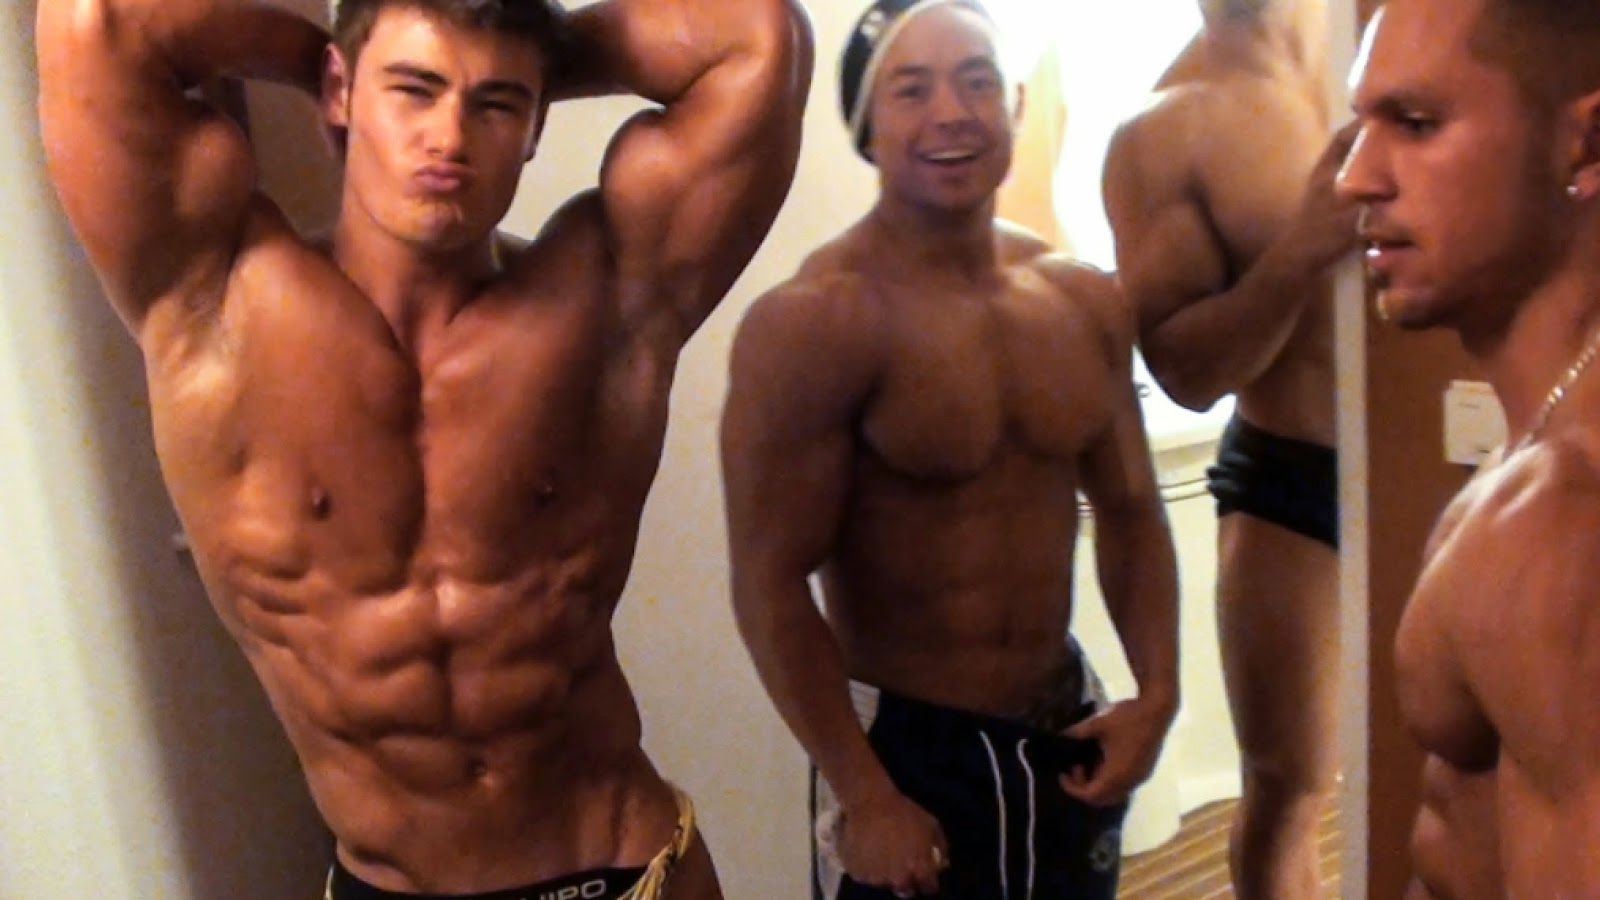 Fitness Models Gay For Pay (NSFW)